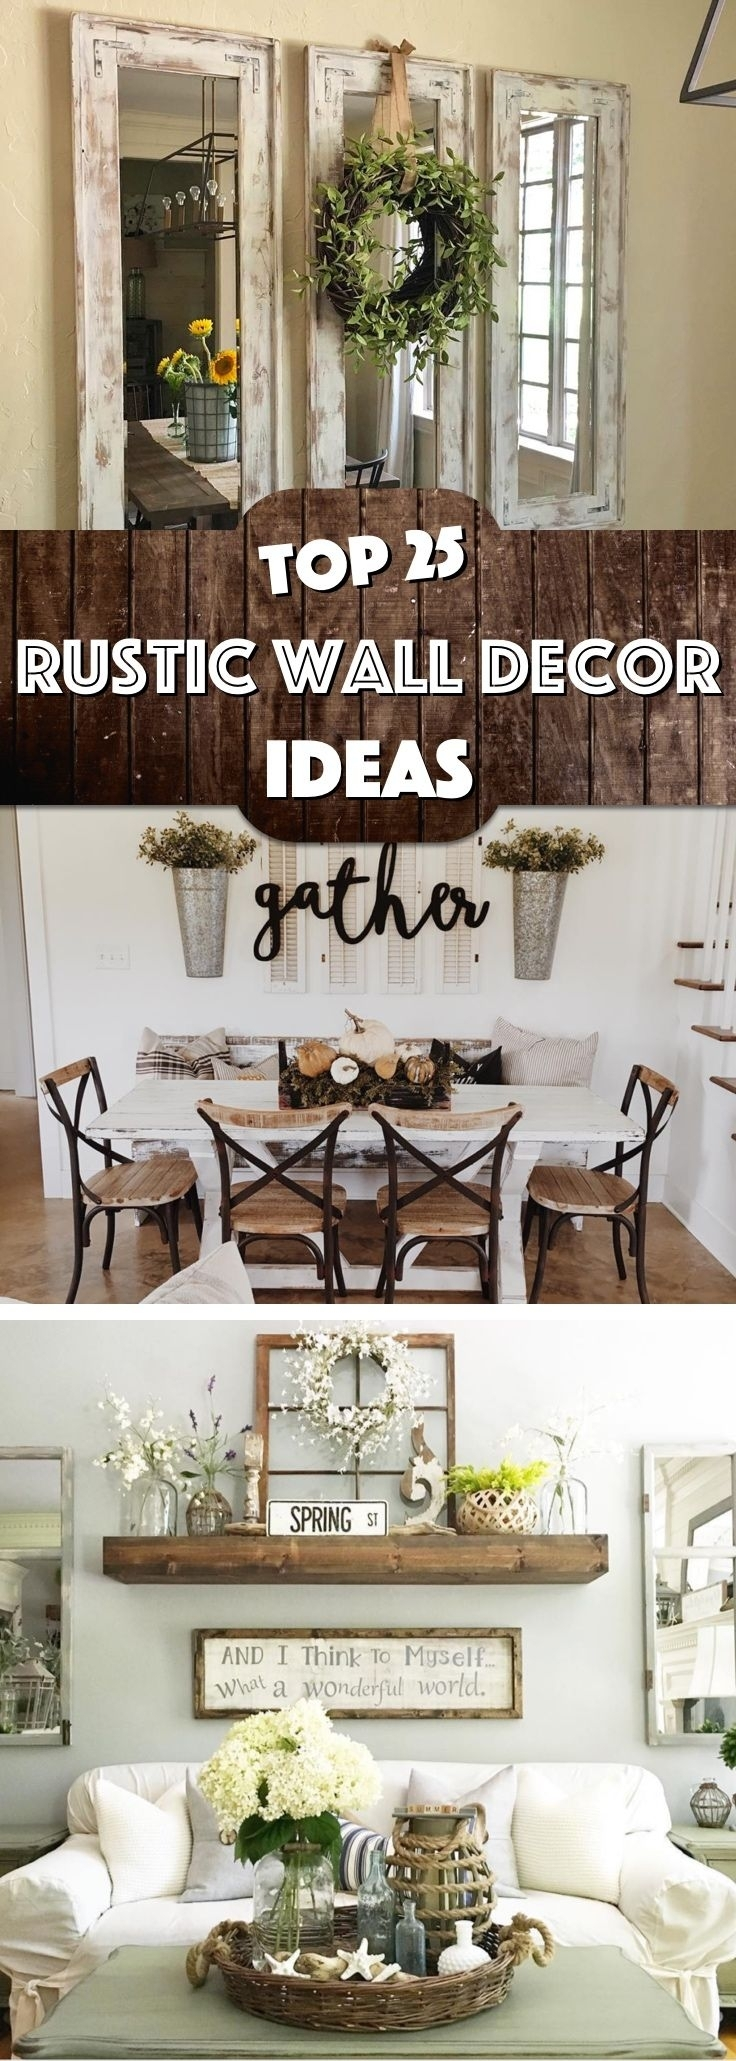 25 Must Try Rustic Wall Decor Ideas Featuring The Most Amazing Intended For Latest Rustic Wall Accents (Gallery 15 of 15)